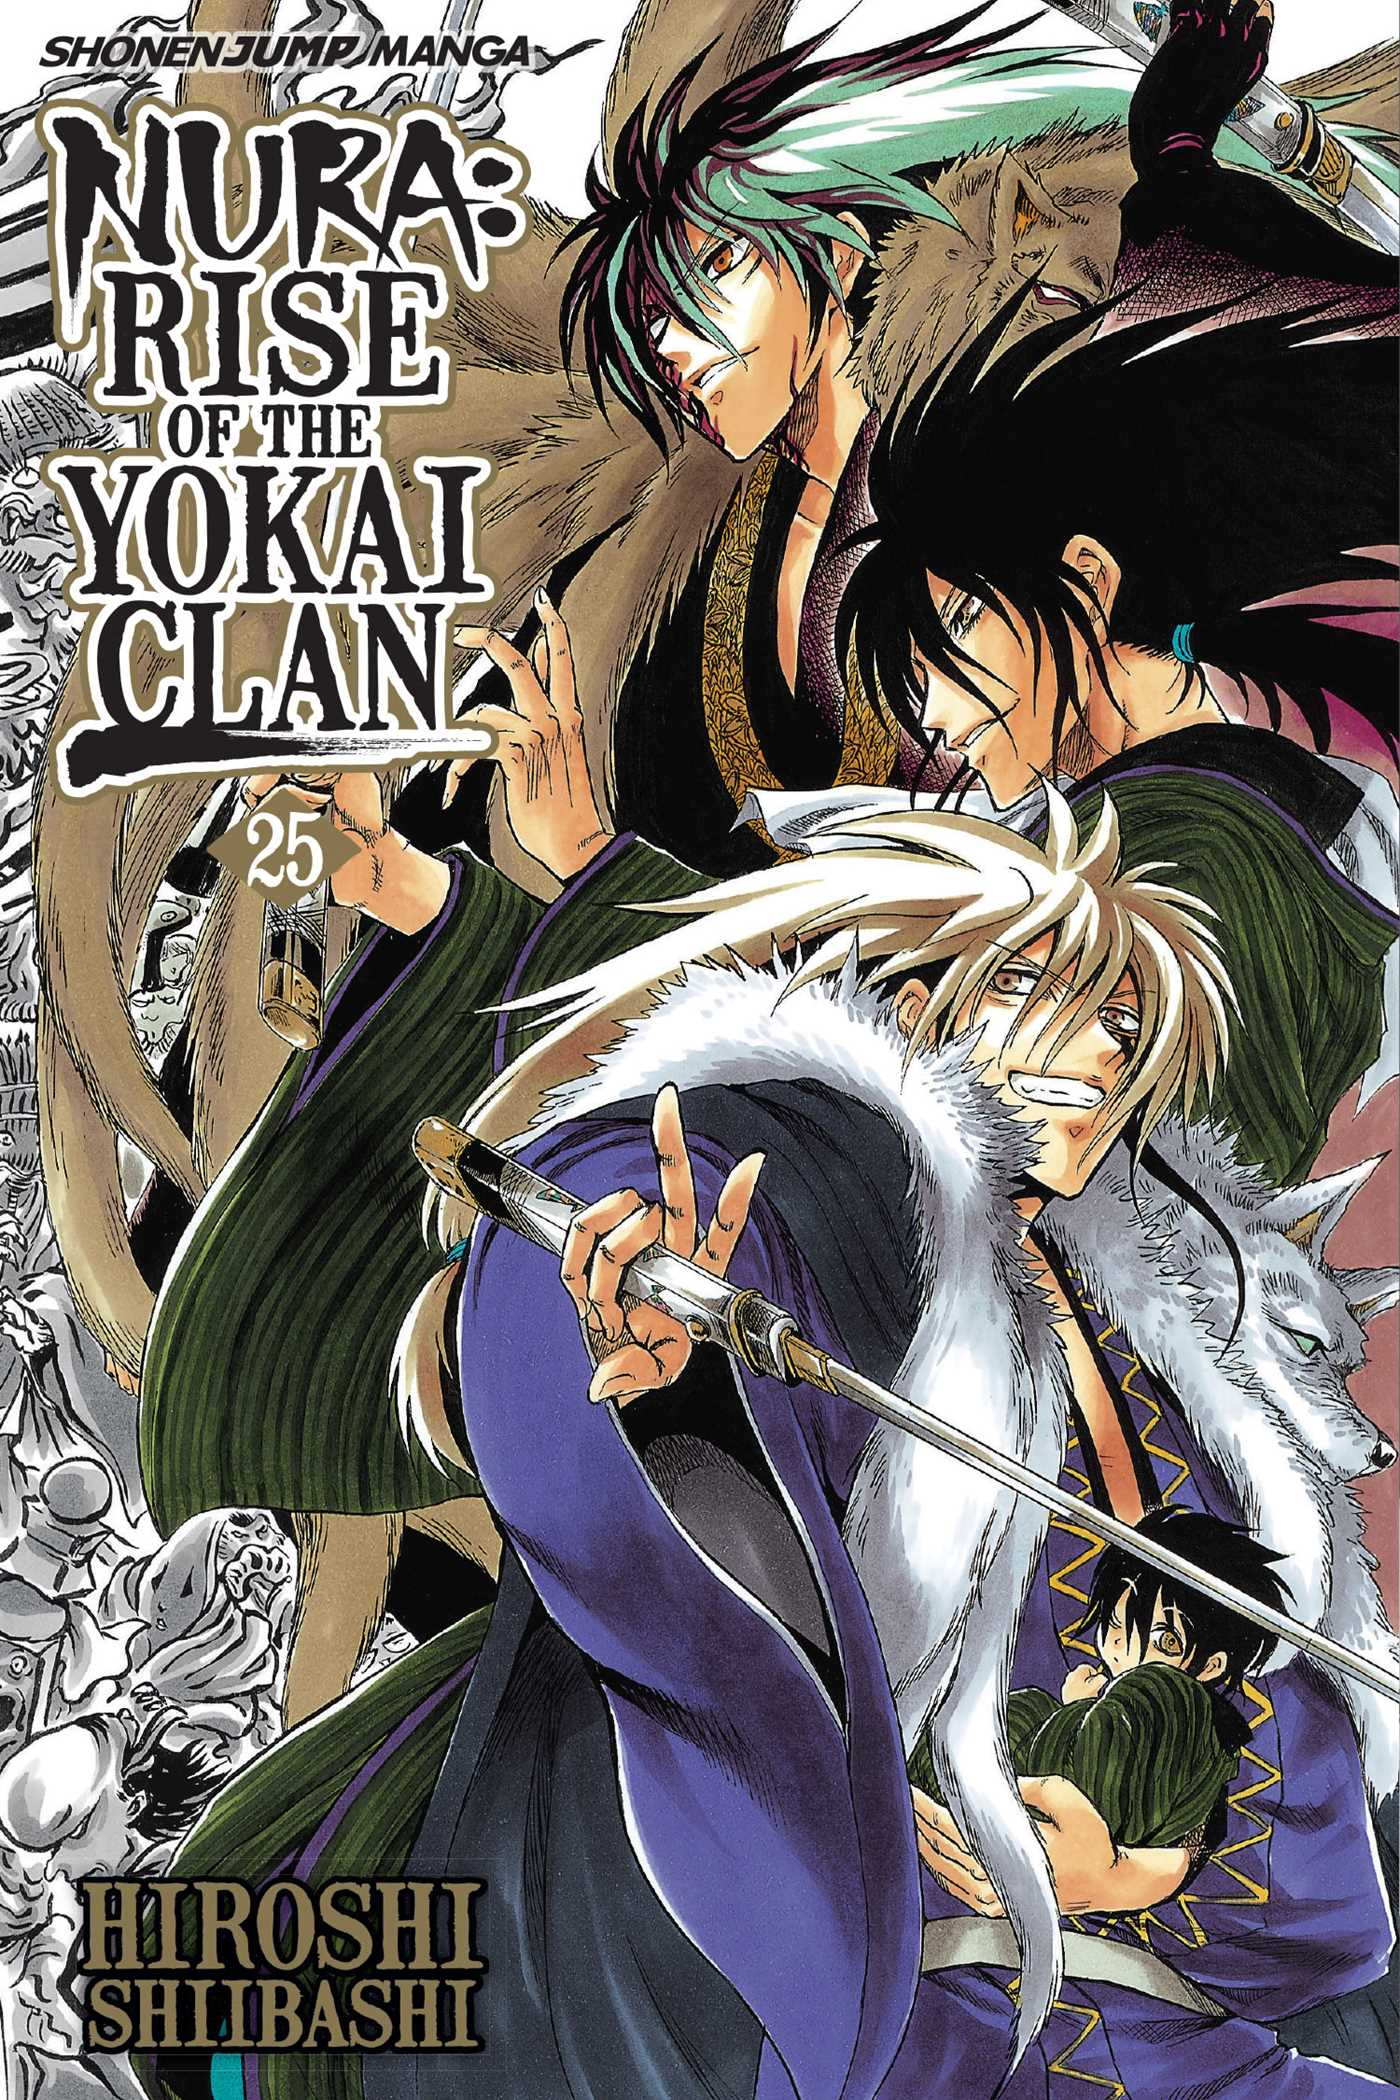 Nura-rise-of-the-yokai-clan-vol-25-9781421564807_hr